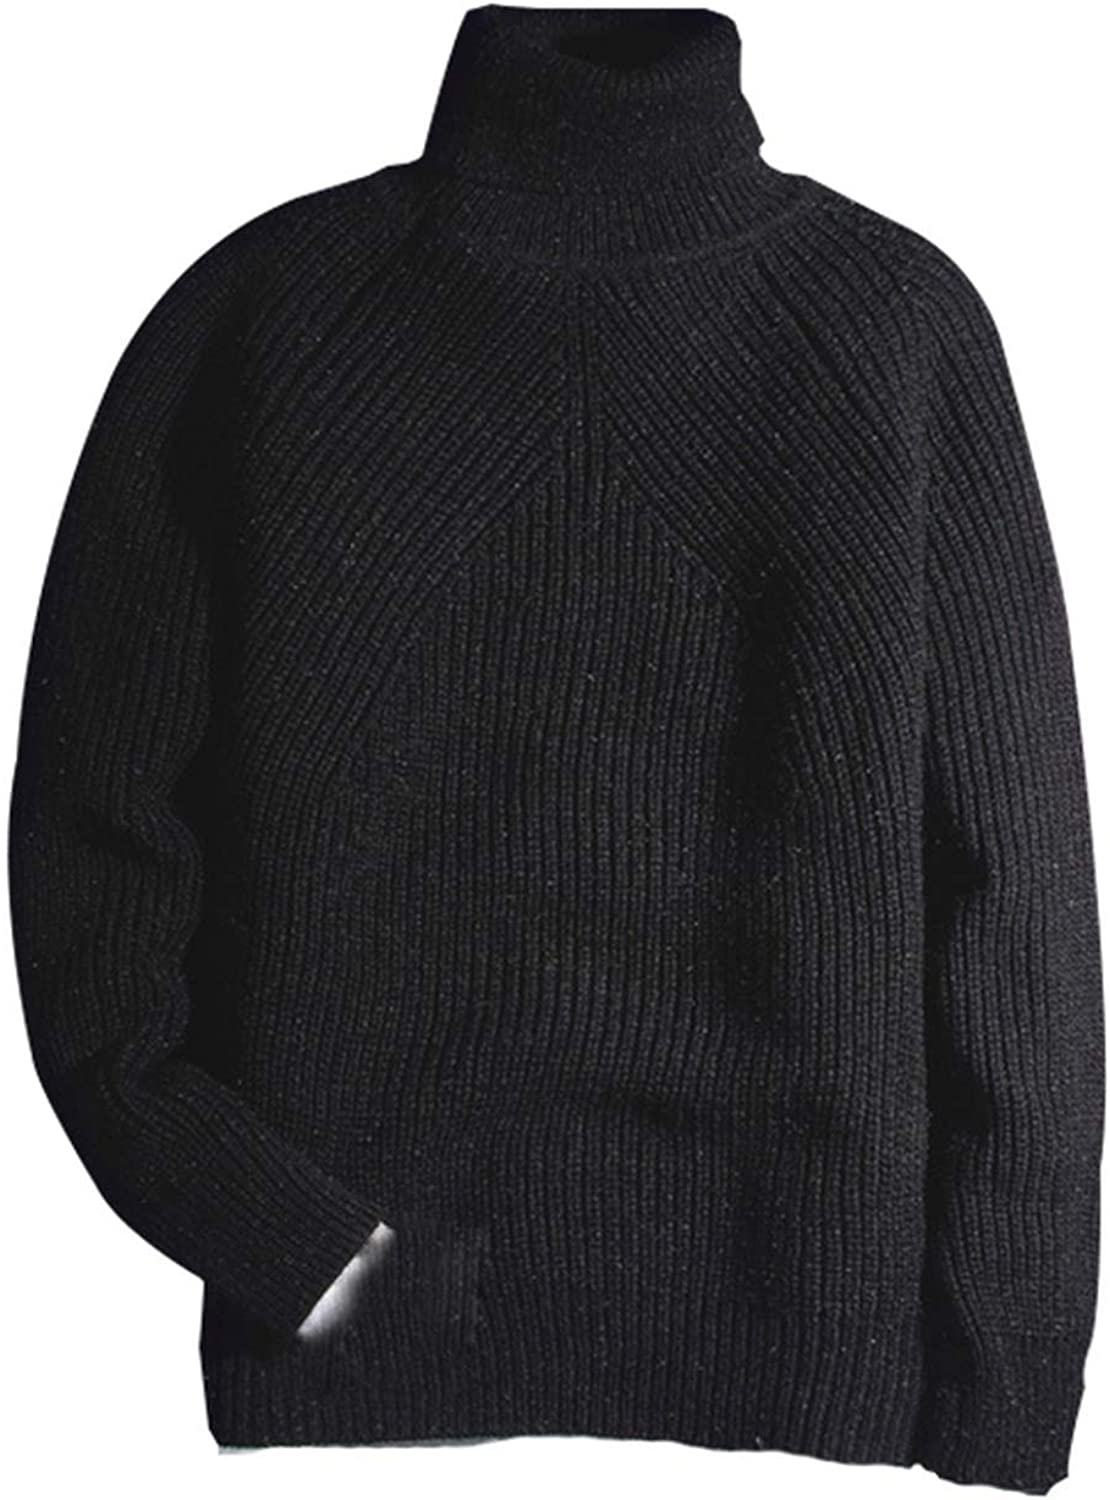 Friendshiy Sweater Man 2019 Winter Thick Turtleneck Mens Pullover Sweaters Casual Crocheted Striped Knitted,XX-Large,ArmyGreen2